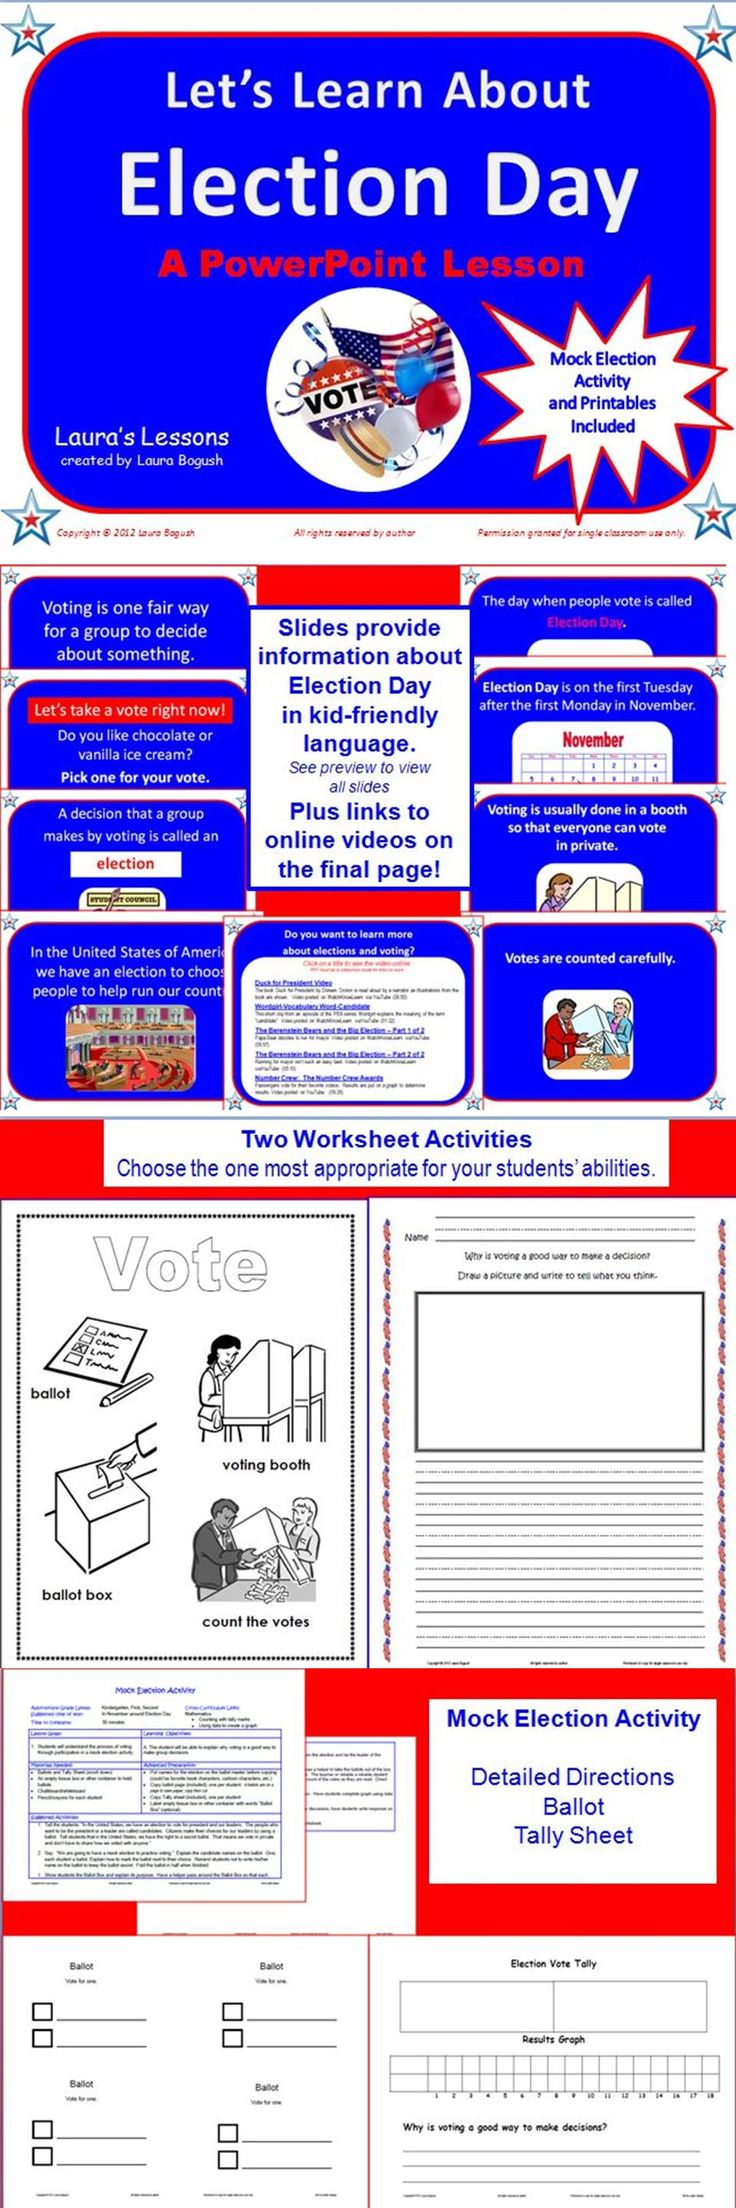 Ready to use!  Election Day PowerPoint Lesson for K, 1st, or 2nd graders. Animations and age-appropriate information keep young students engaged. Includes worksheets and links to 5 online videos. $